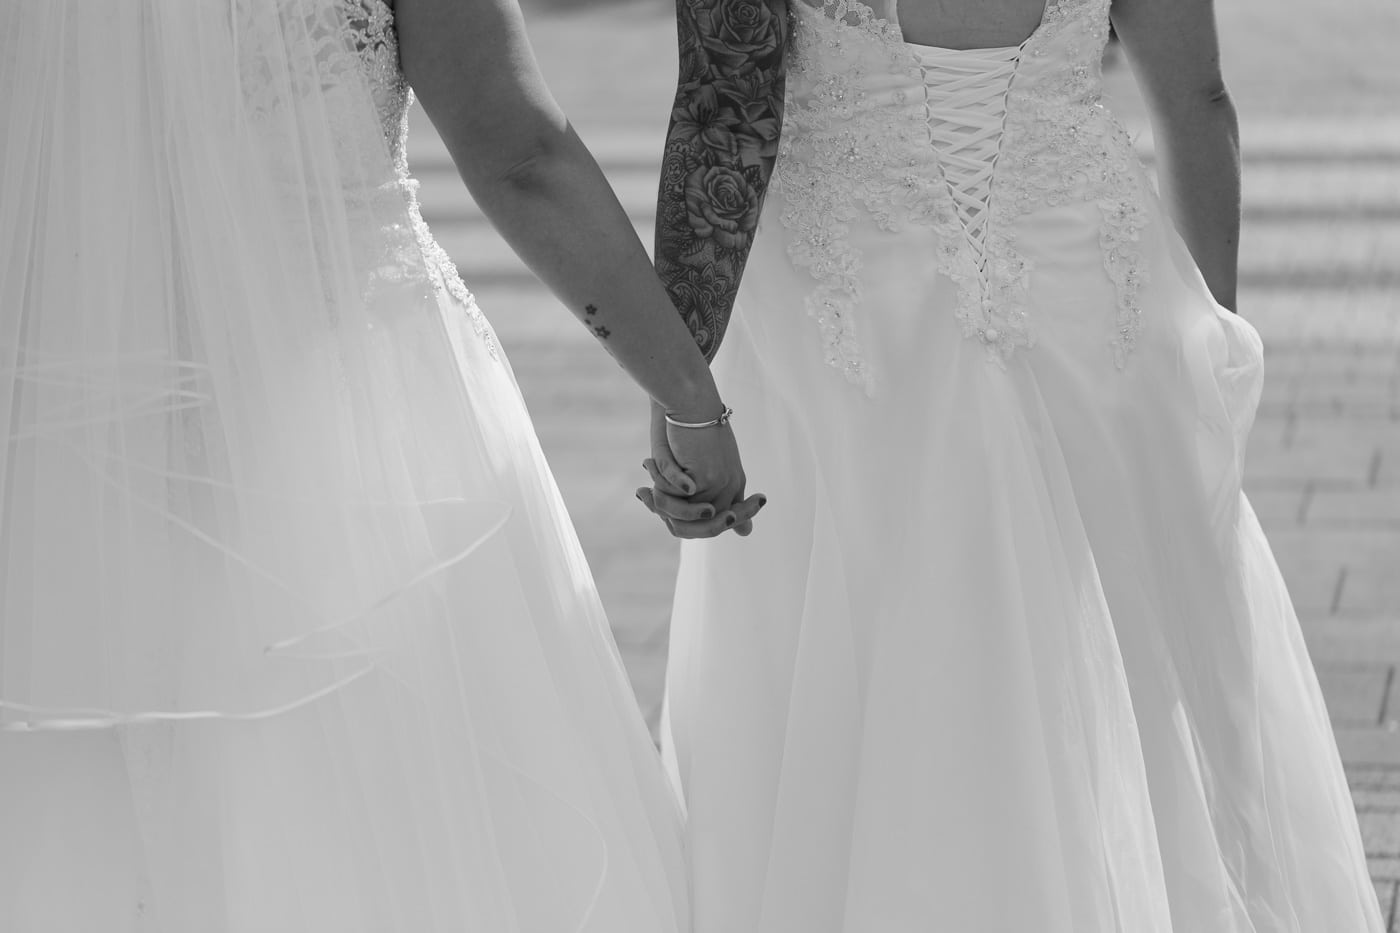 Brides holding hands for wedding by Joshua Wyborn photography